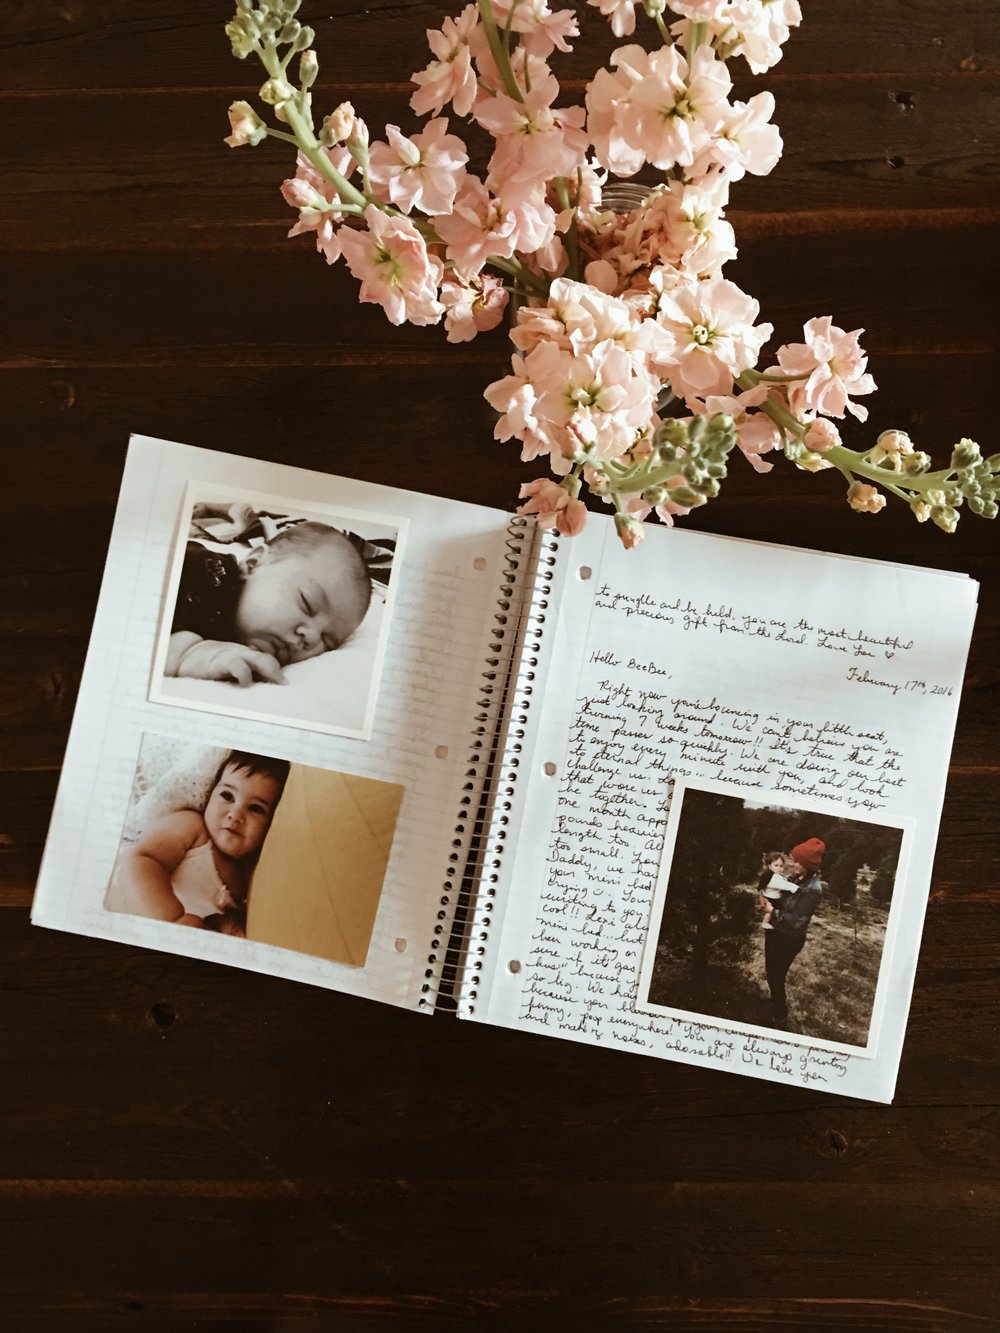 How I plan on adding photos to the journal eventually.